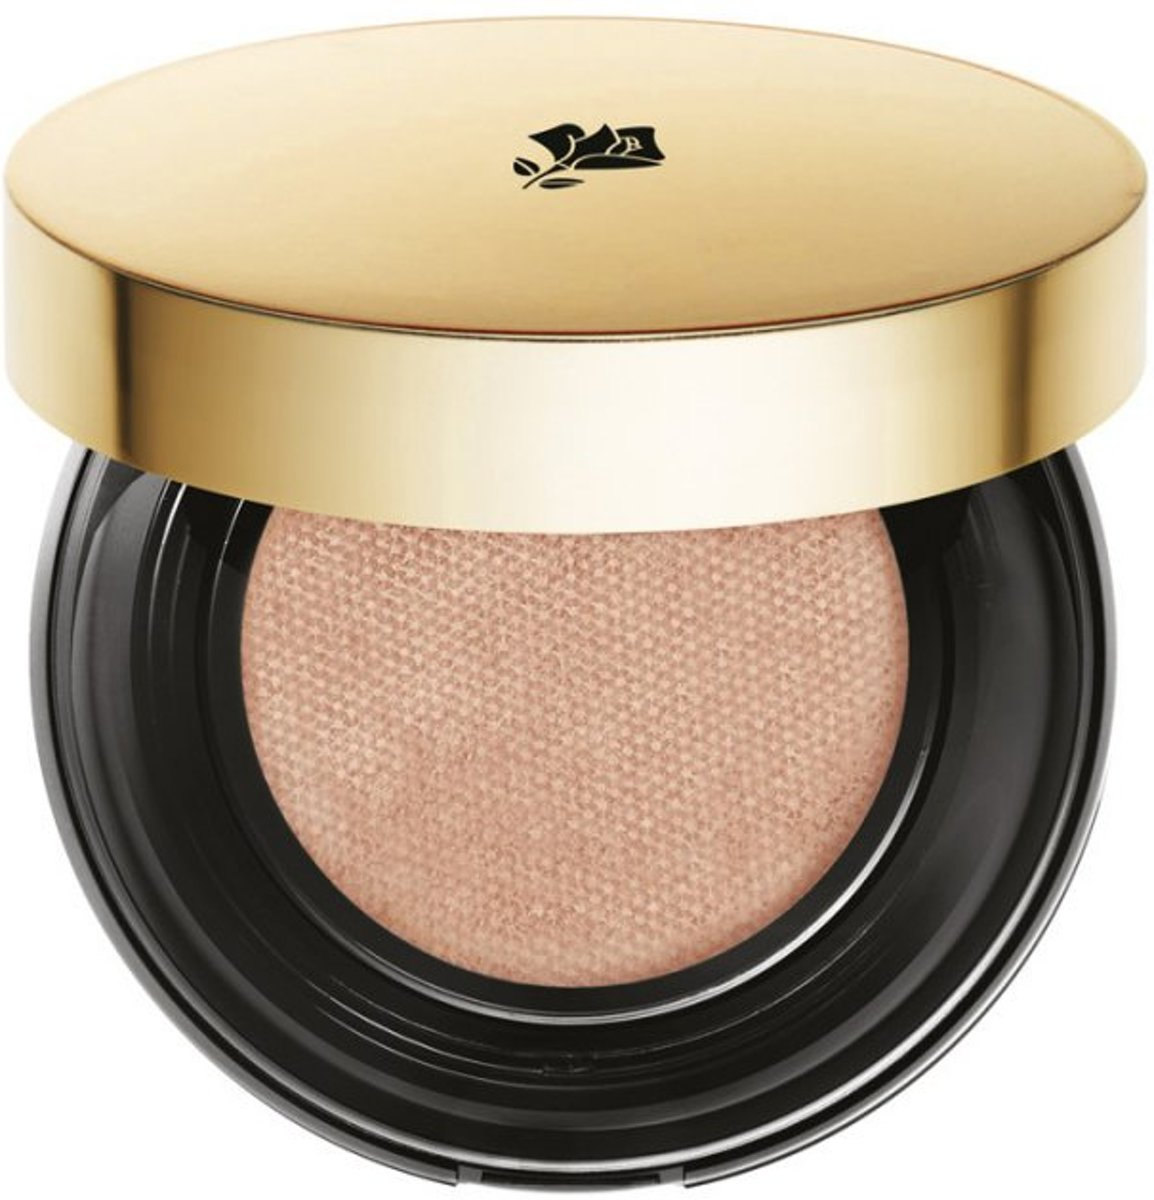 Lancôme Teint Idole Ultra Cushion Foundation 13 gr - 025 - Beige Naturel